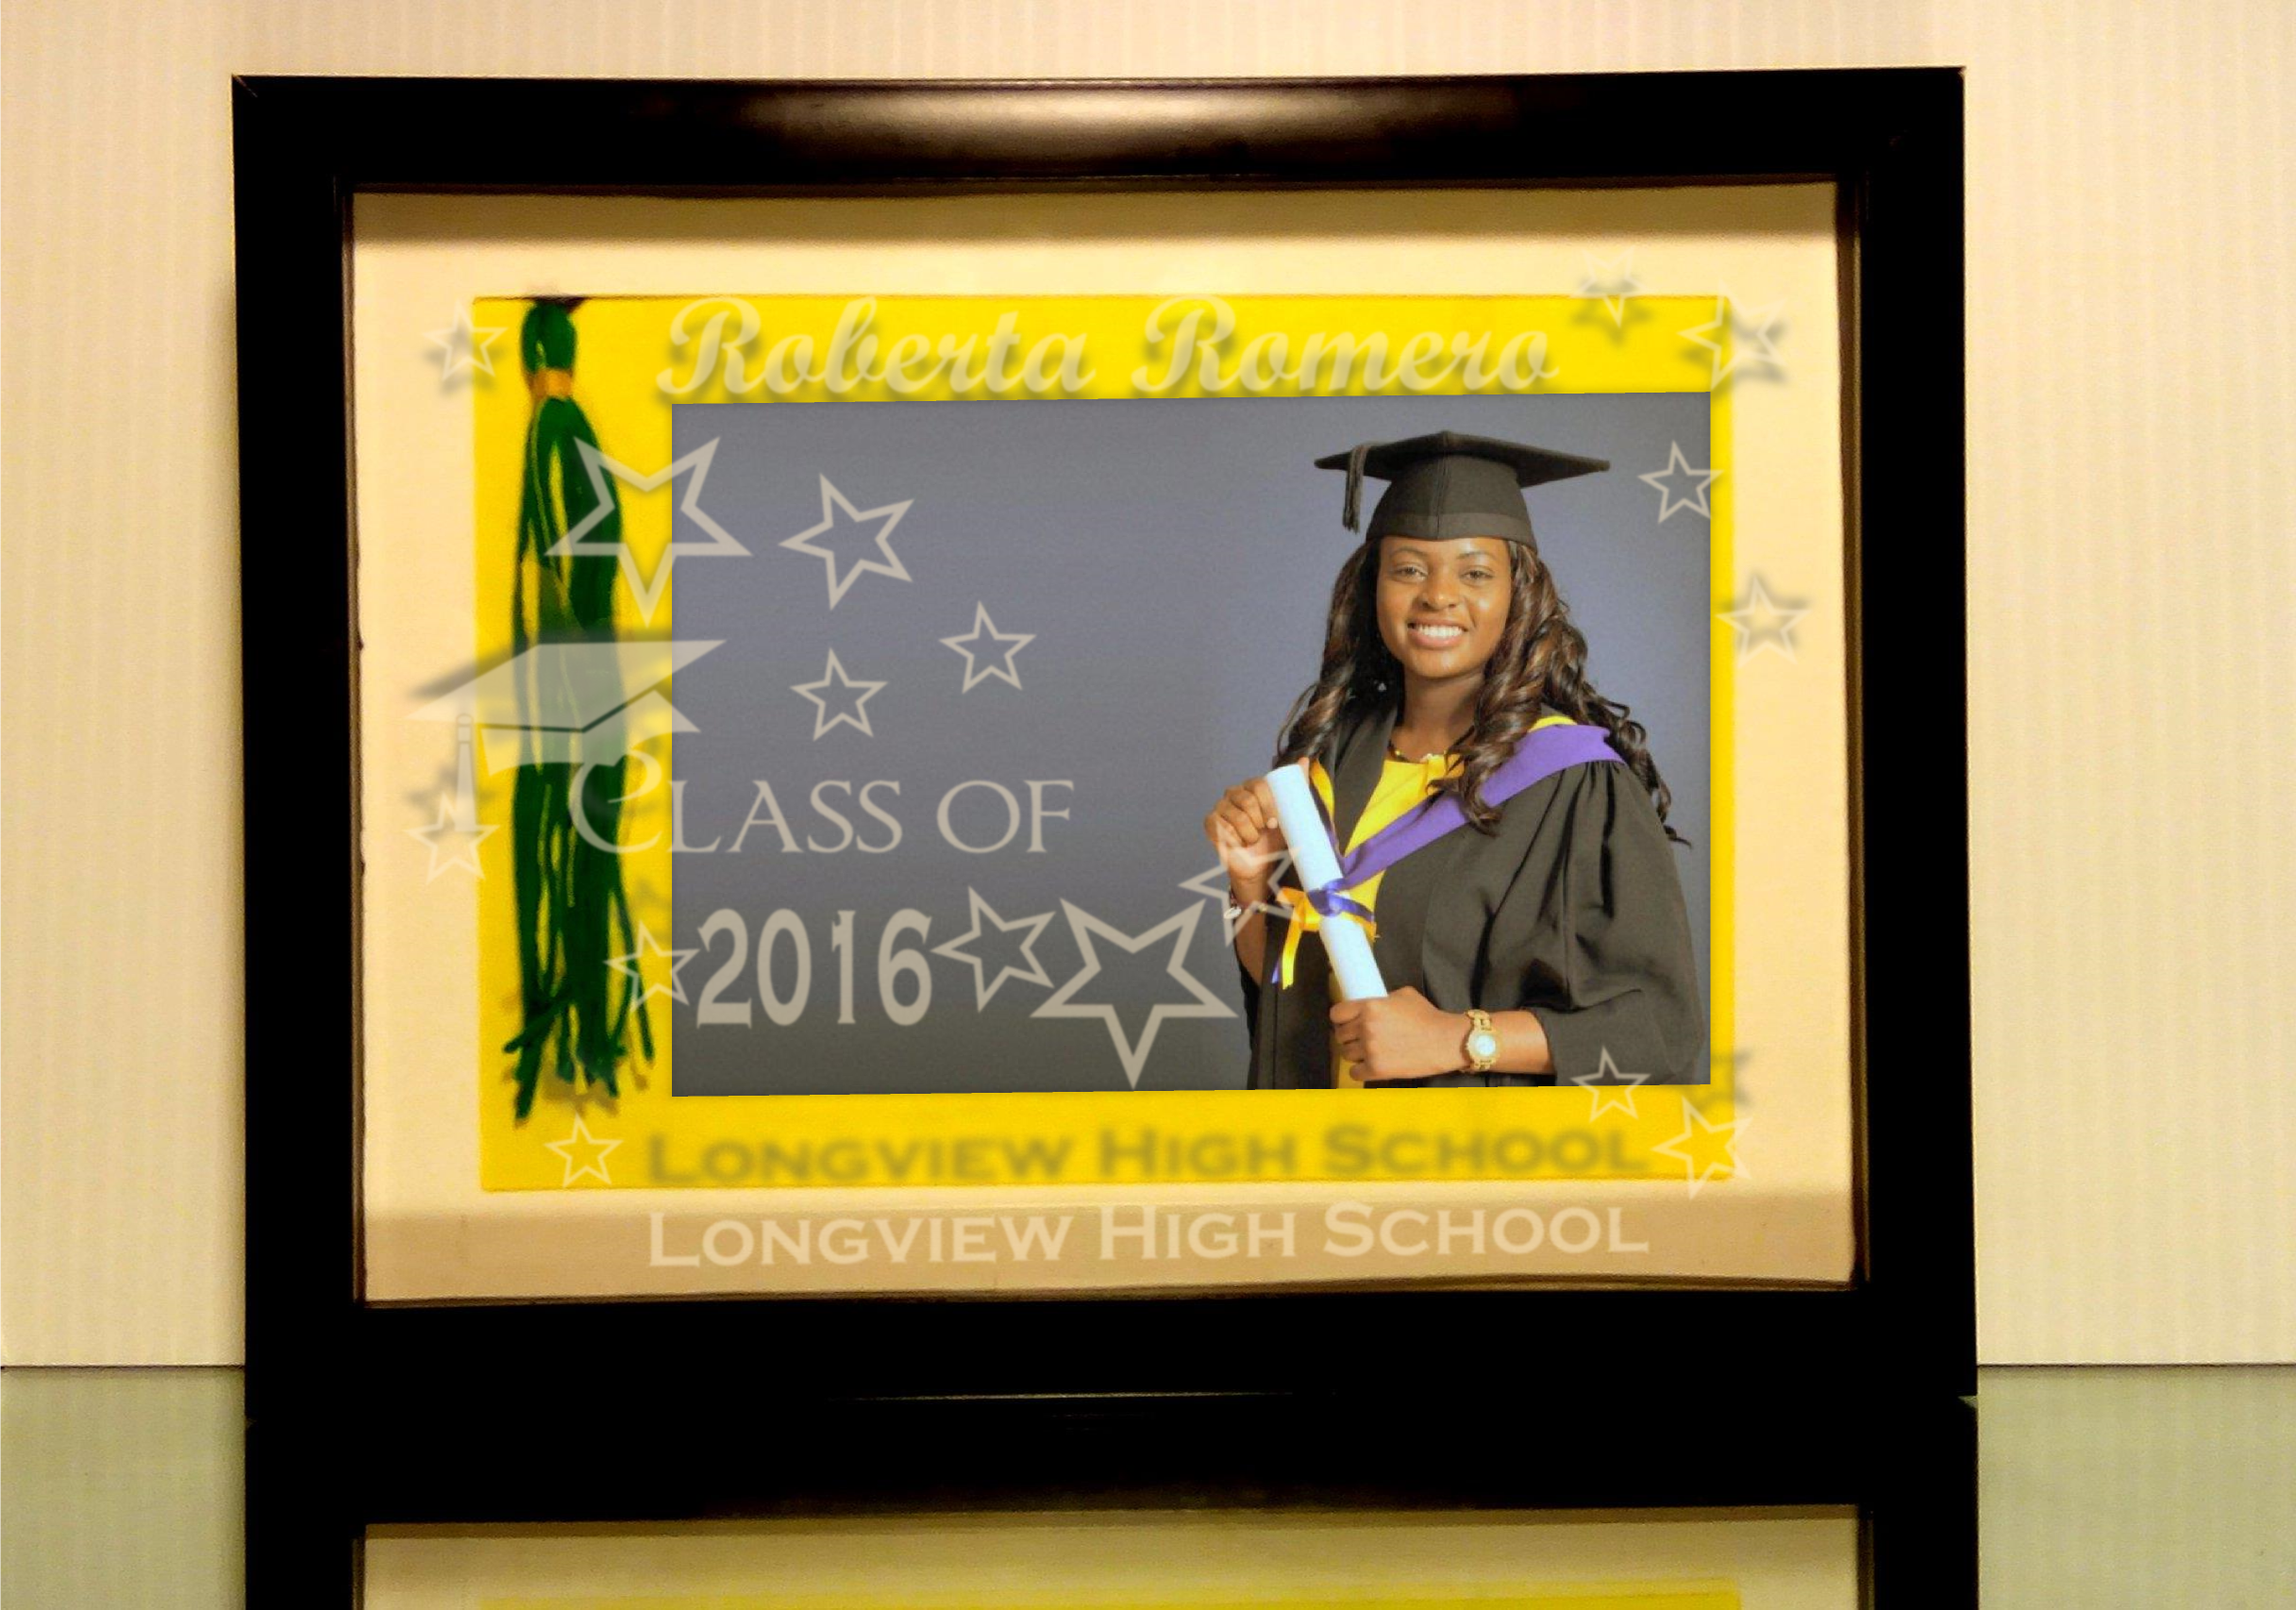 6.5x8.5 inch frames matted to display 5x7 inch under a custom etched ...